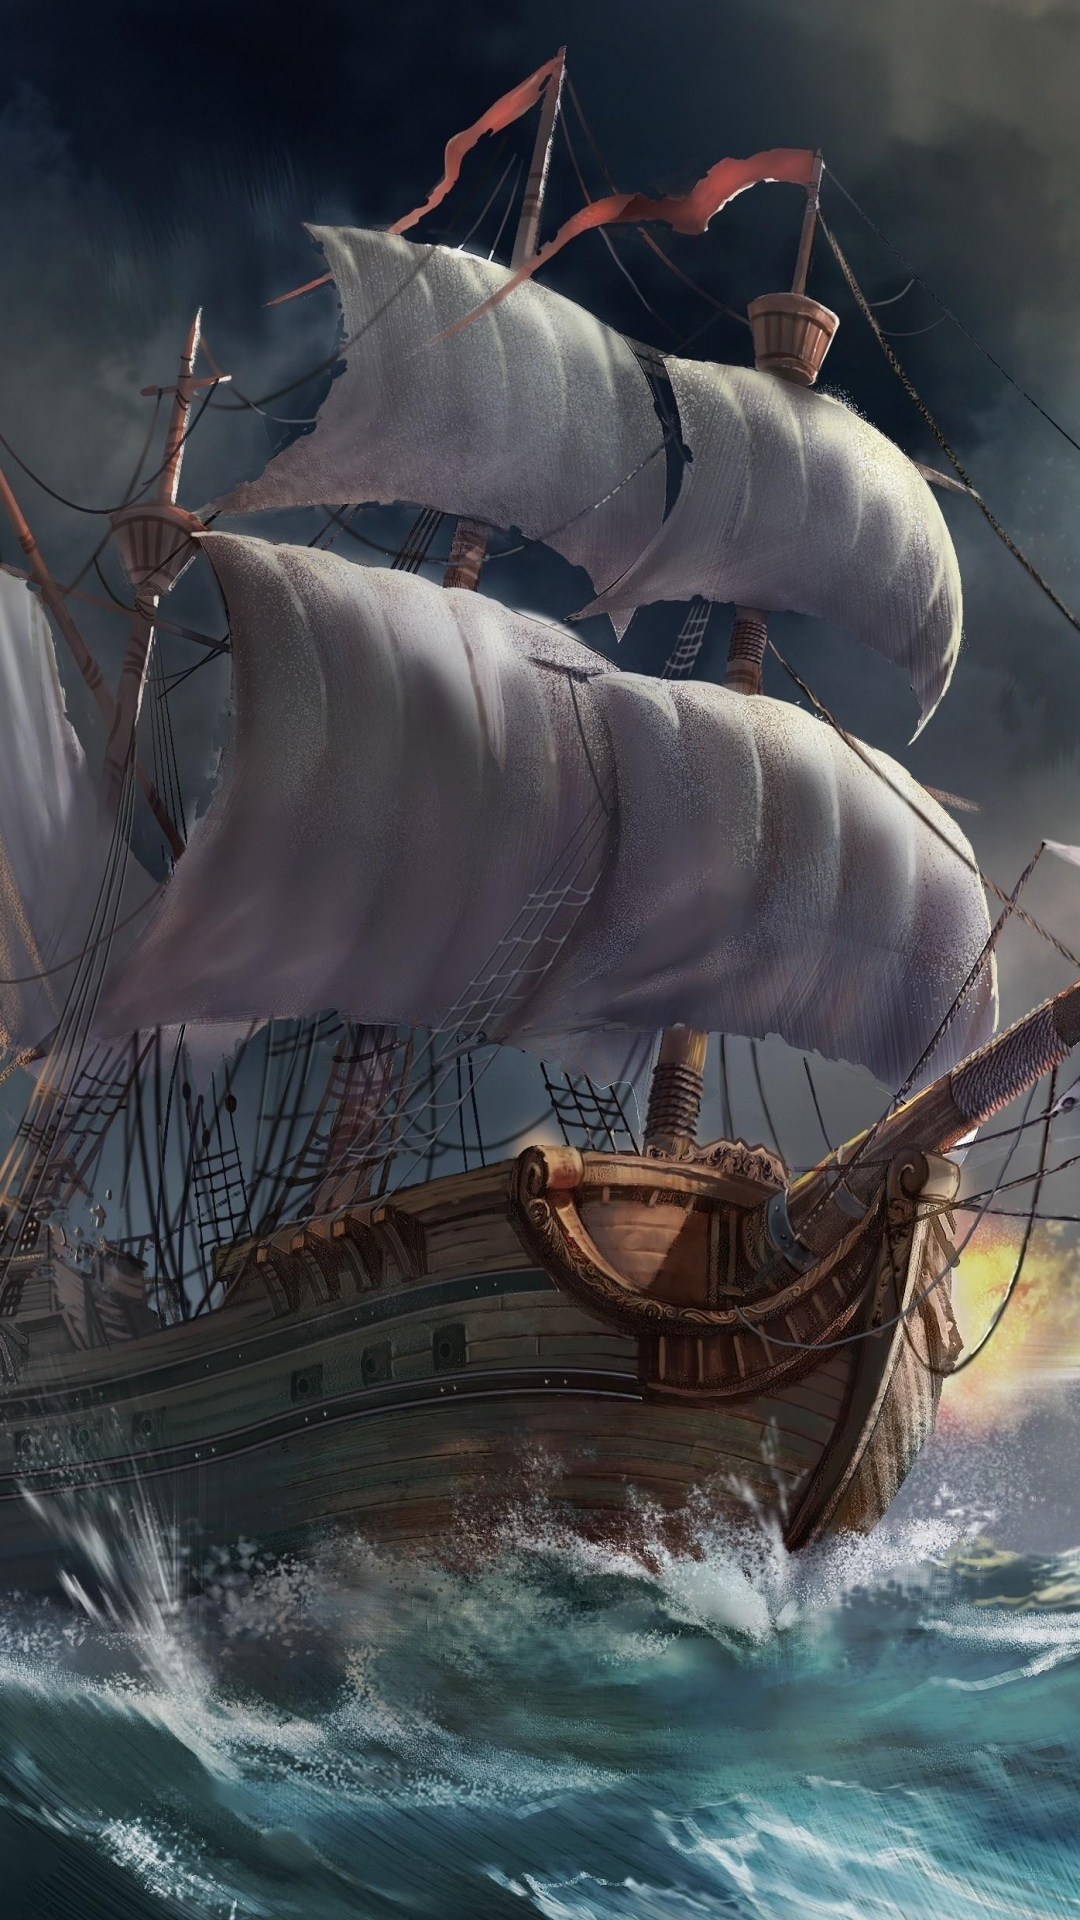 iphone wallpaper ships sea storm Ship